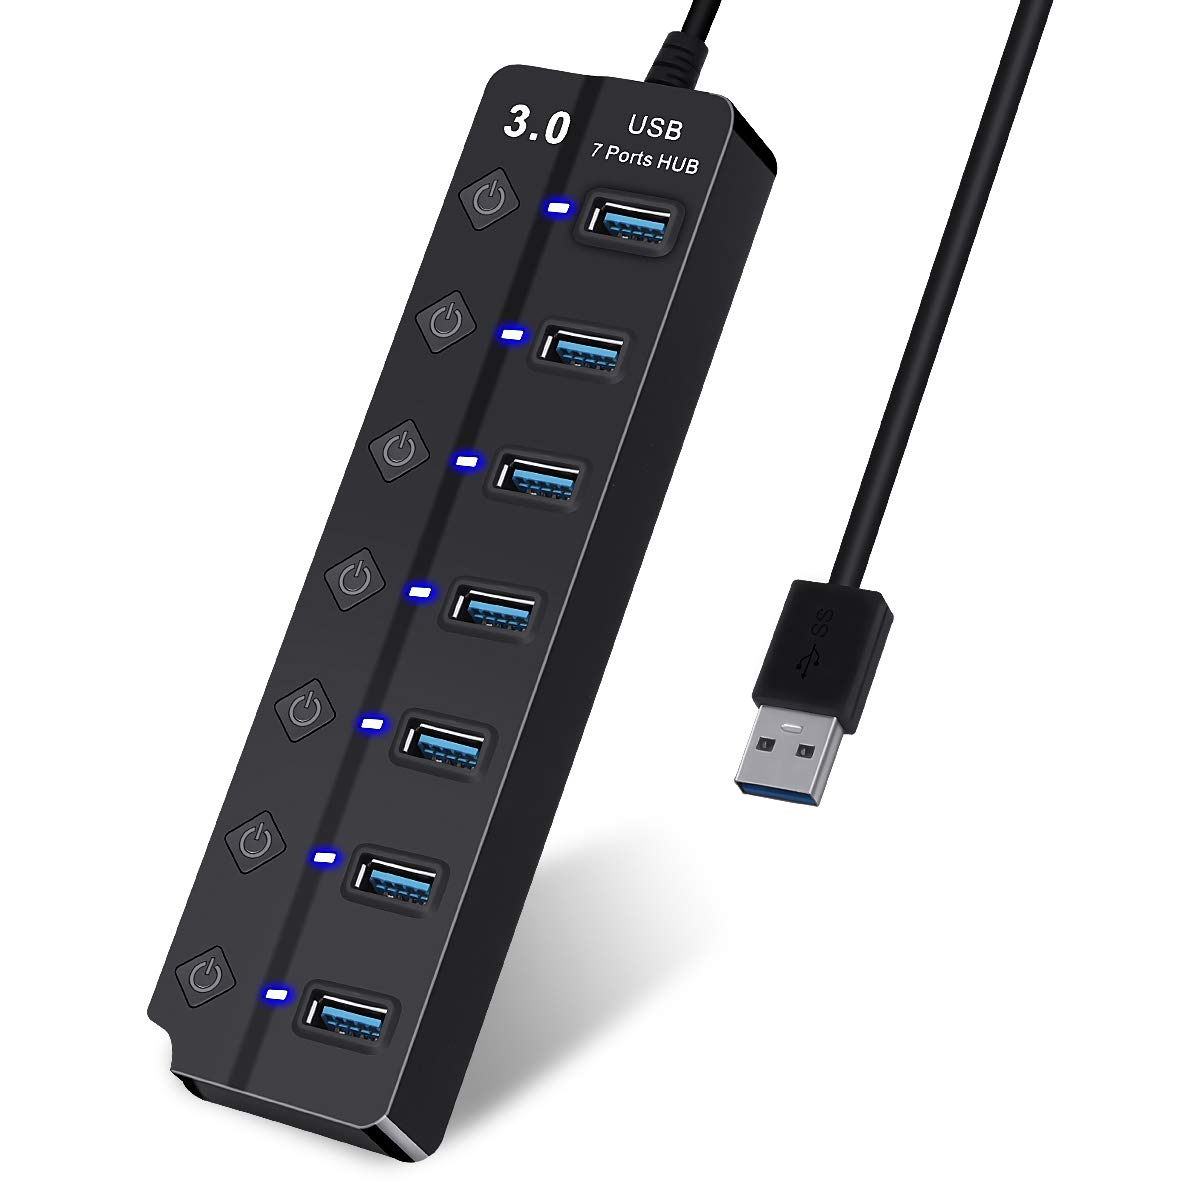 USB Hub USB 3.0 Ports Hubs Data Hub, Individual On/Off Switches,for MacBook, Mac Pro/Mini, iMac, Surface Pro, XPS, PC, Flash Drive (7-in-1) by asuku